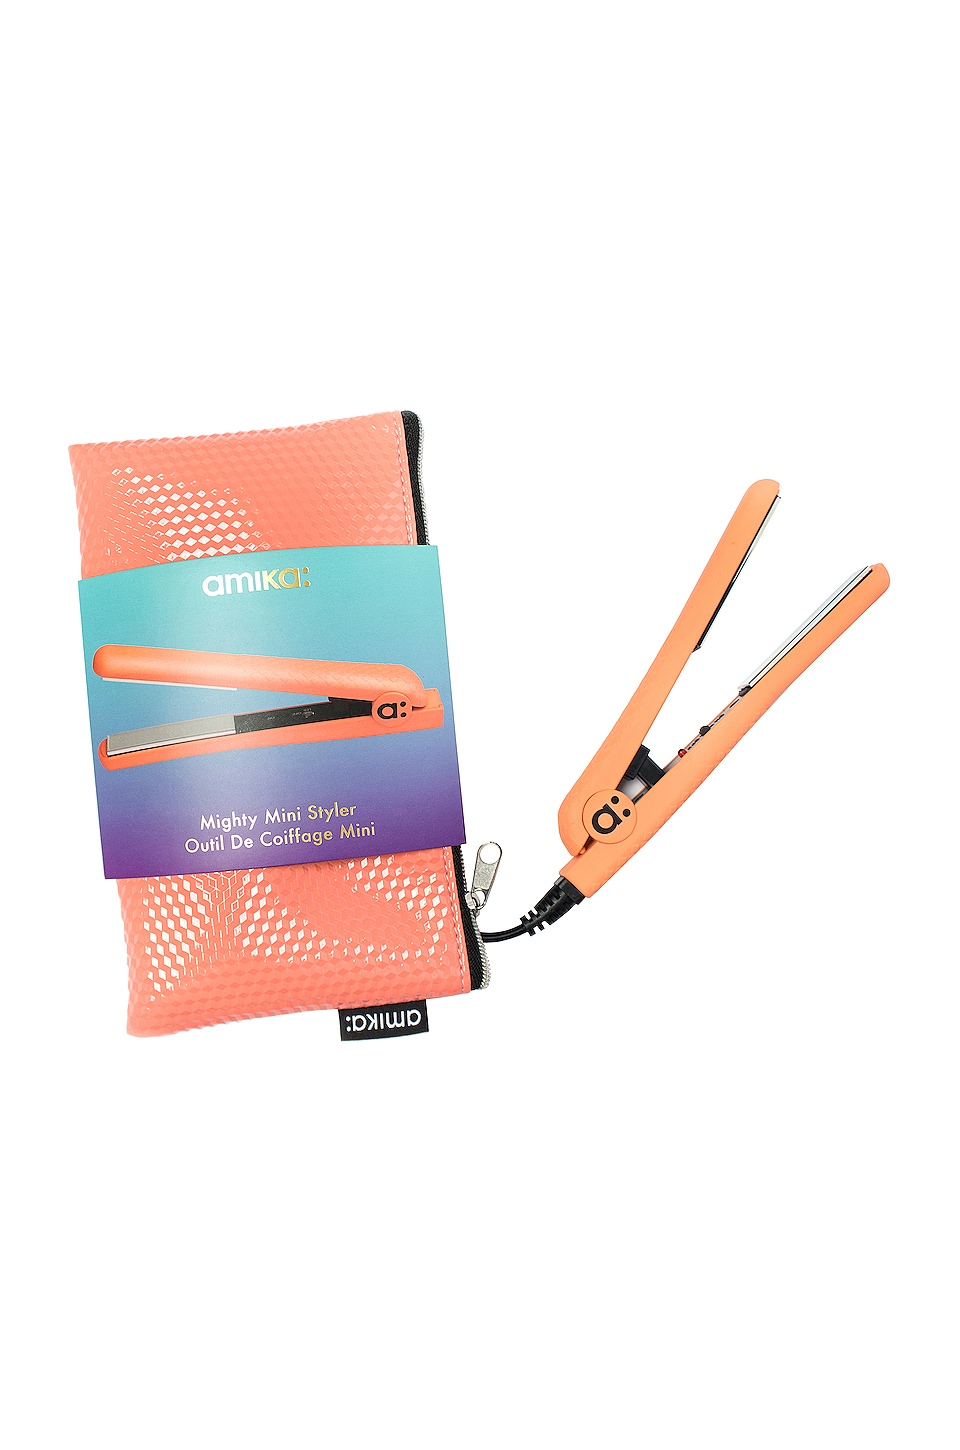 Amika Mighty Mini Styler in Coral Pink + Wink